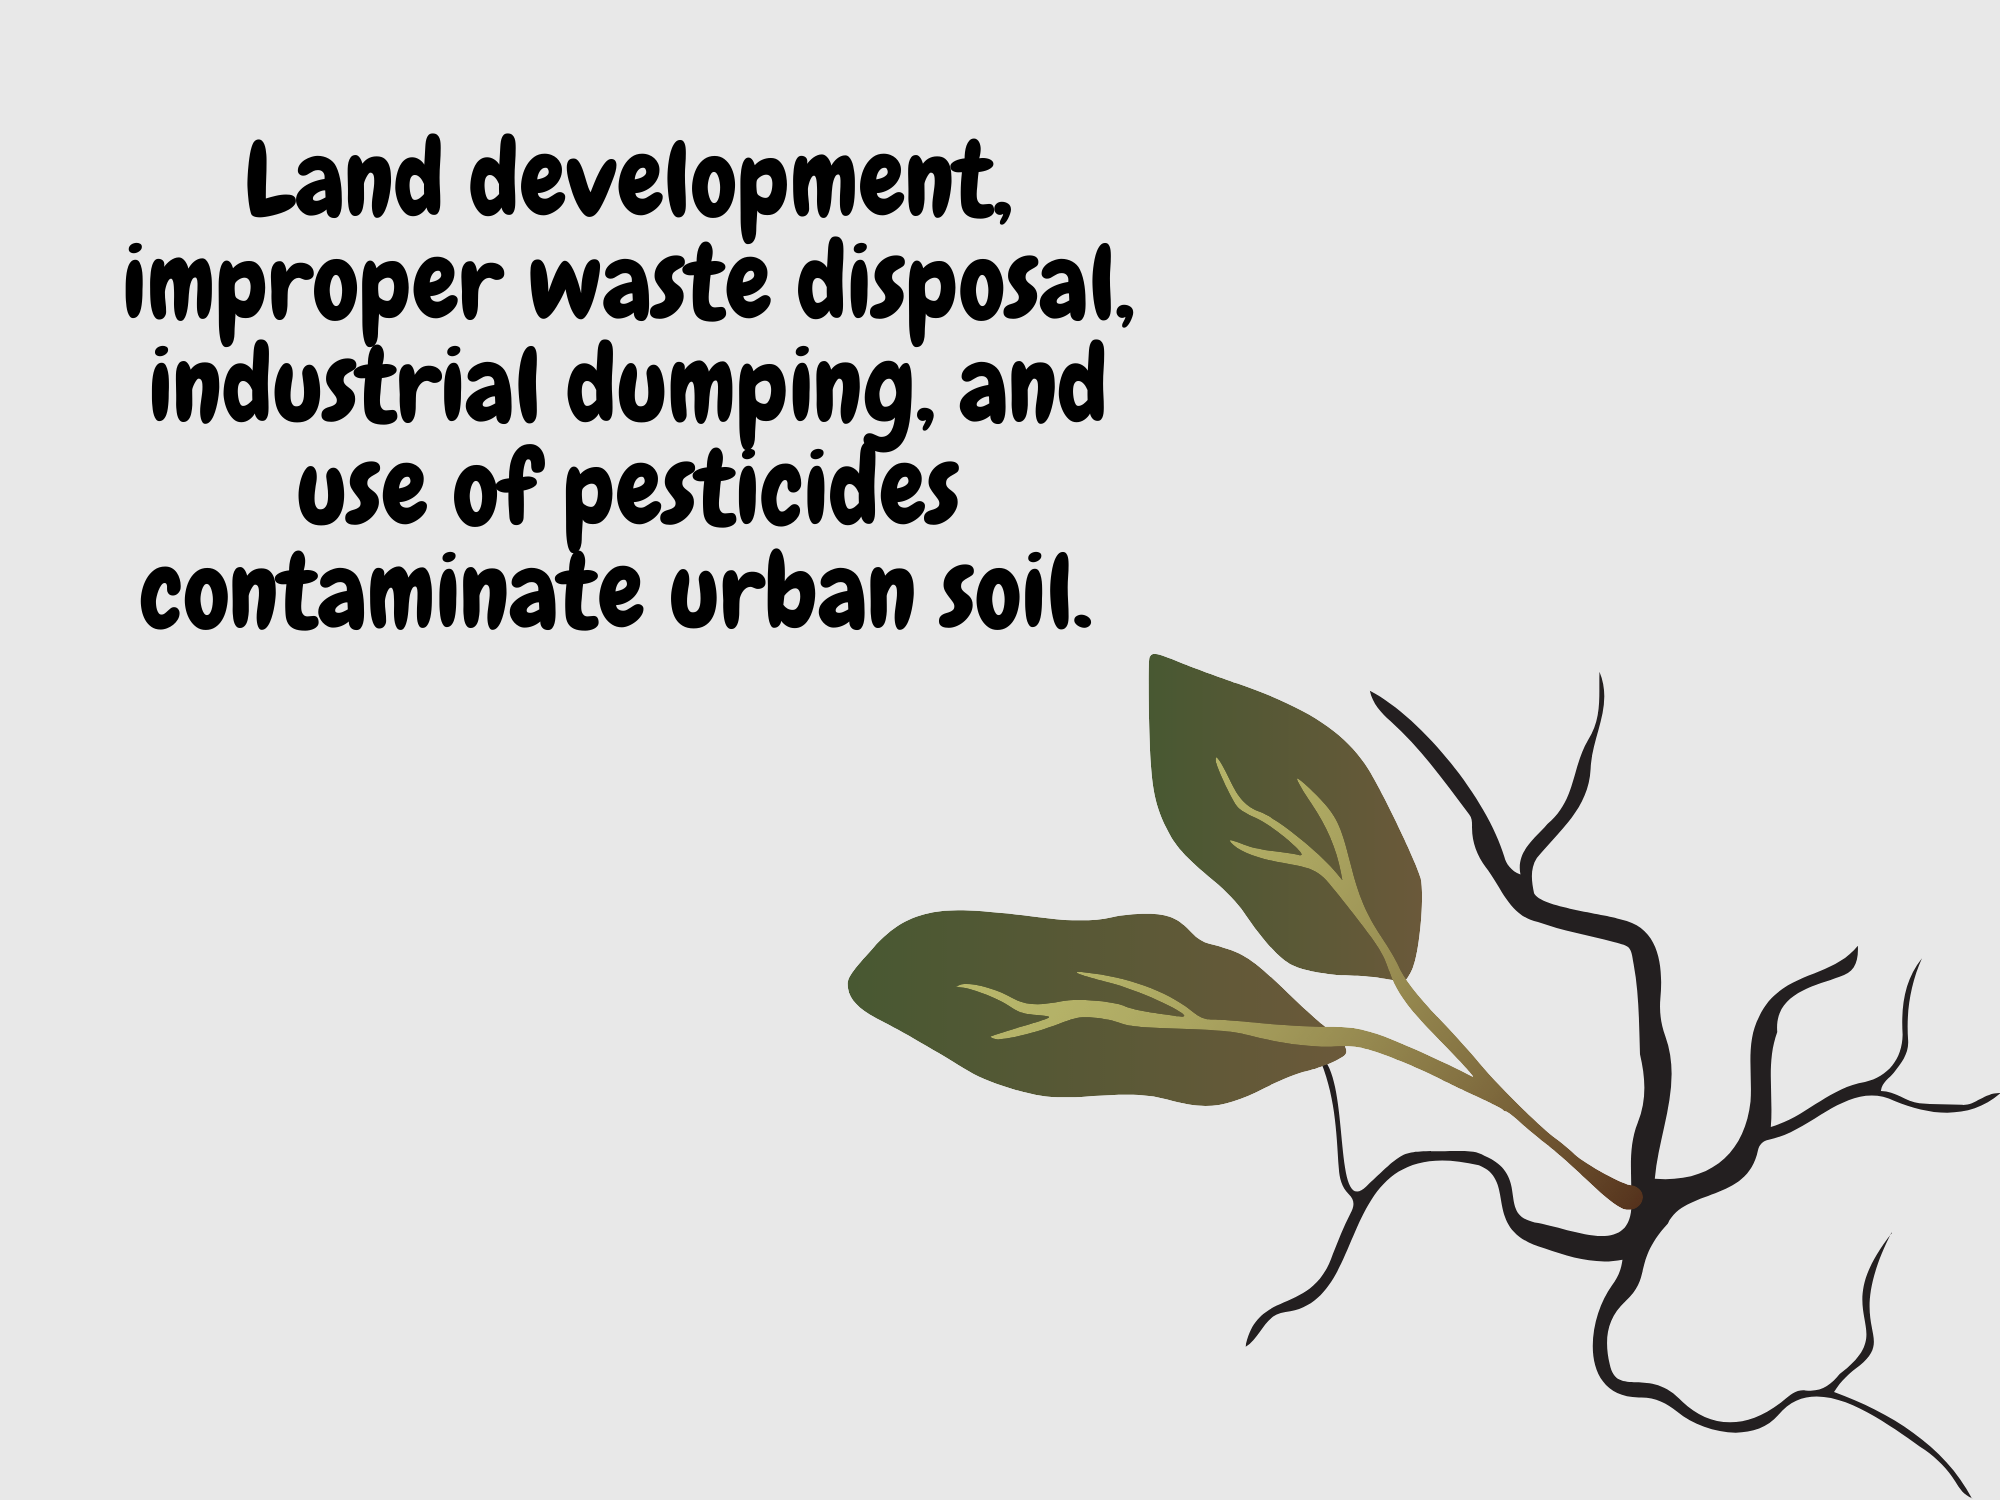 Land-development-improper-waste-disposal-industrial-dumping-and-use-of-pesticides-contaminate-urban